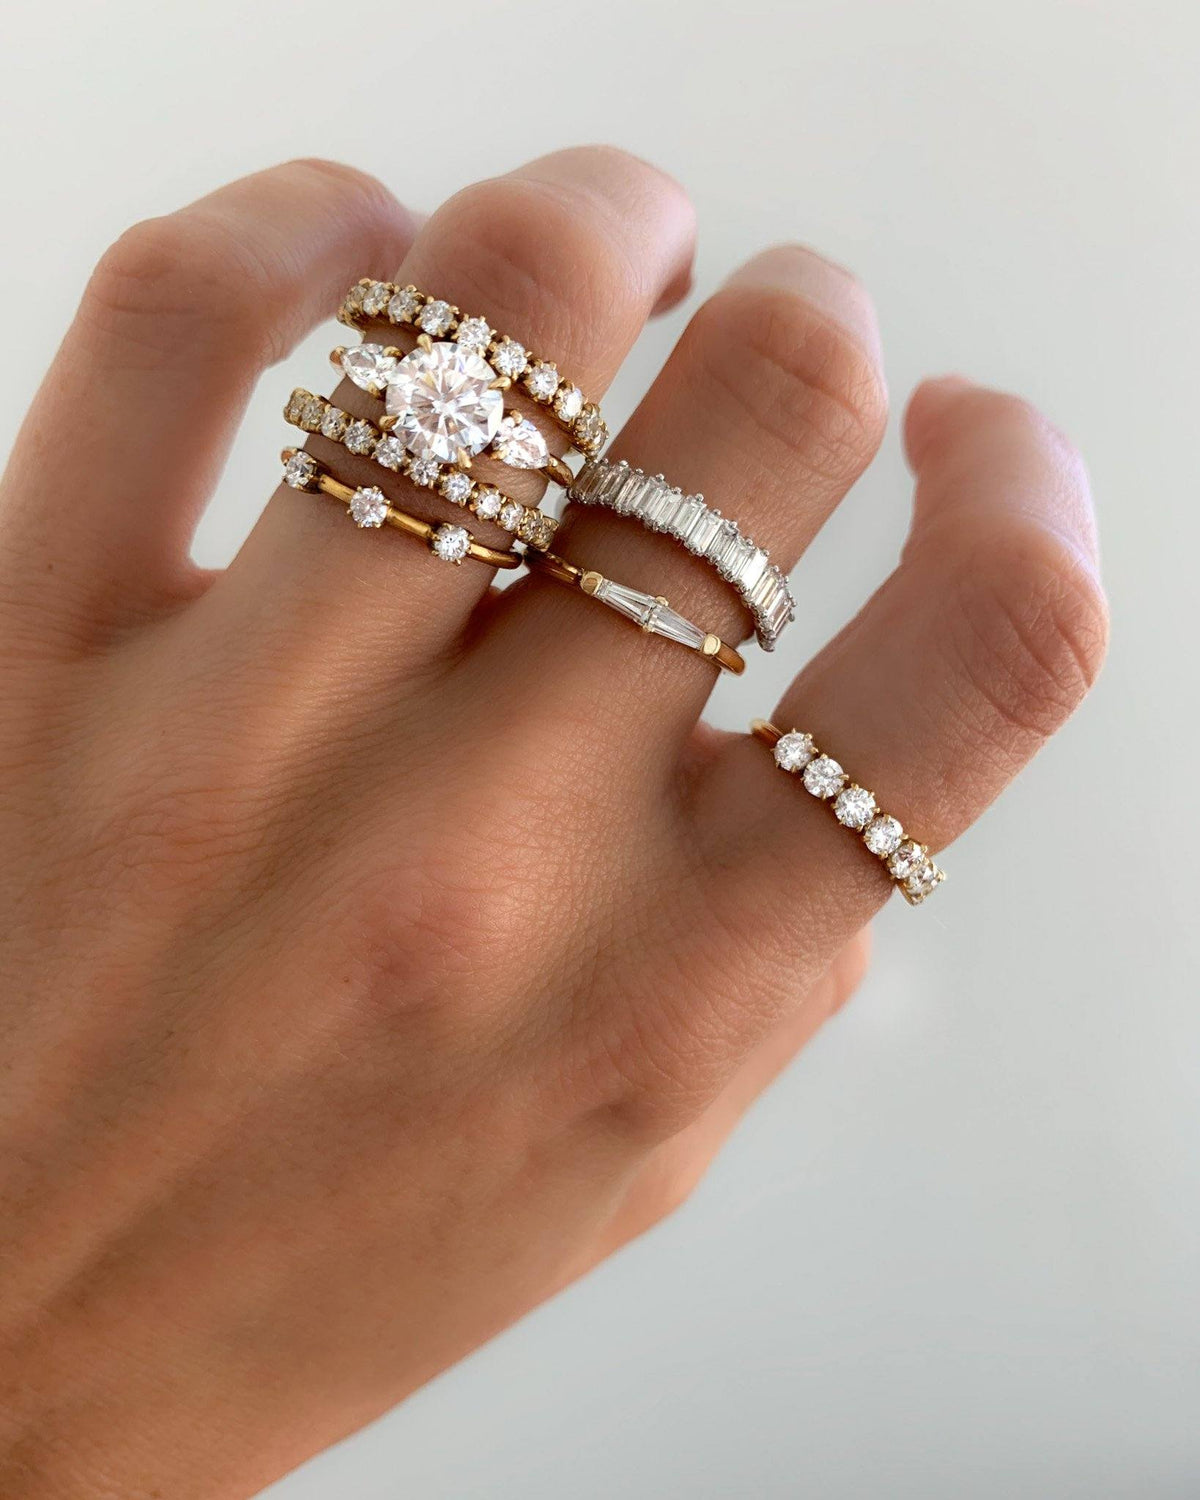 Midi Baguette Diamond Stacker available in Gold and Platinum By Good Stone